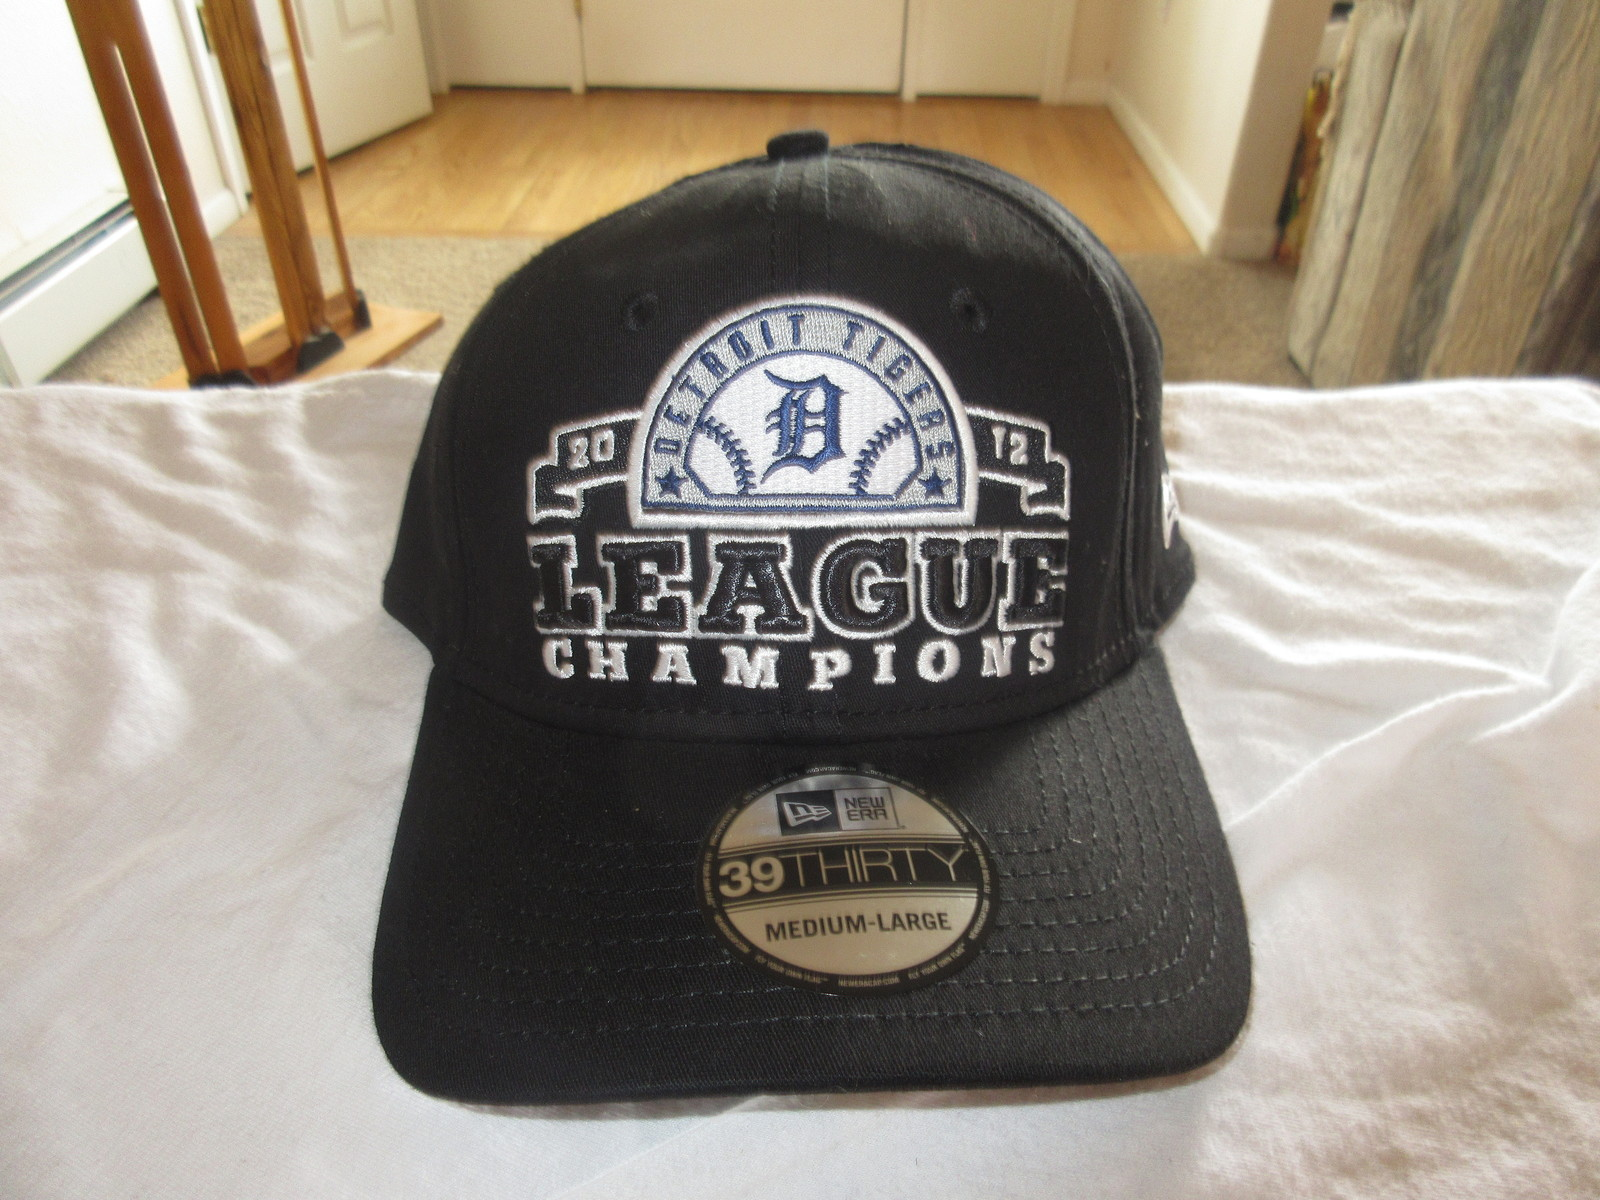 Detroit Tigers 2012 League Champions New Era 39 Thirty Fitted Team Hat